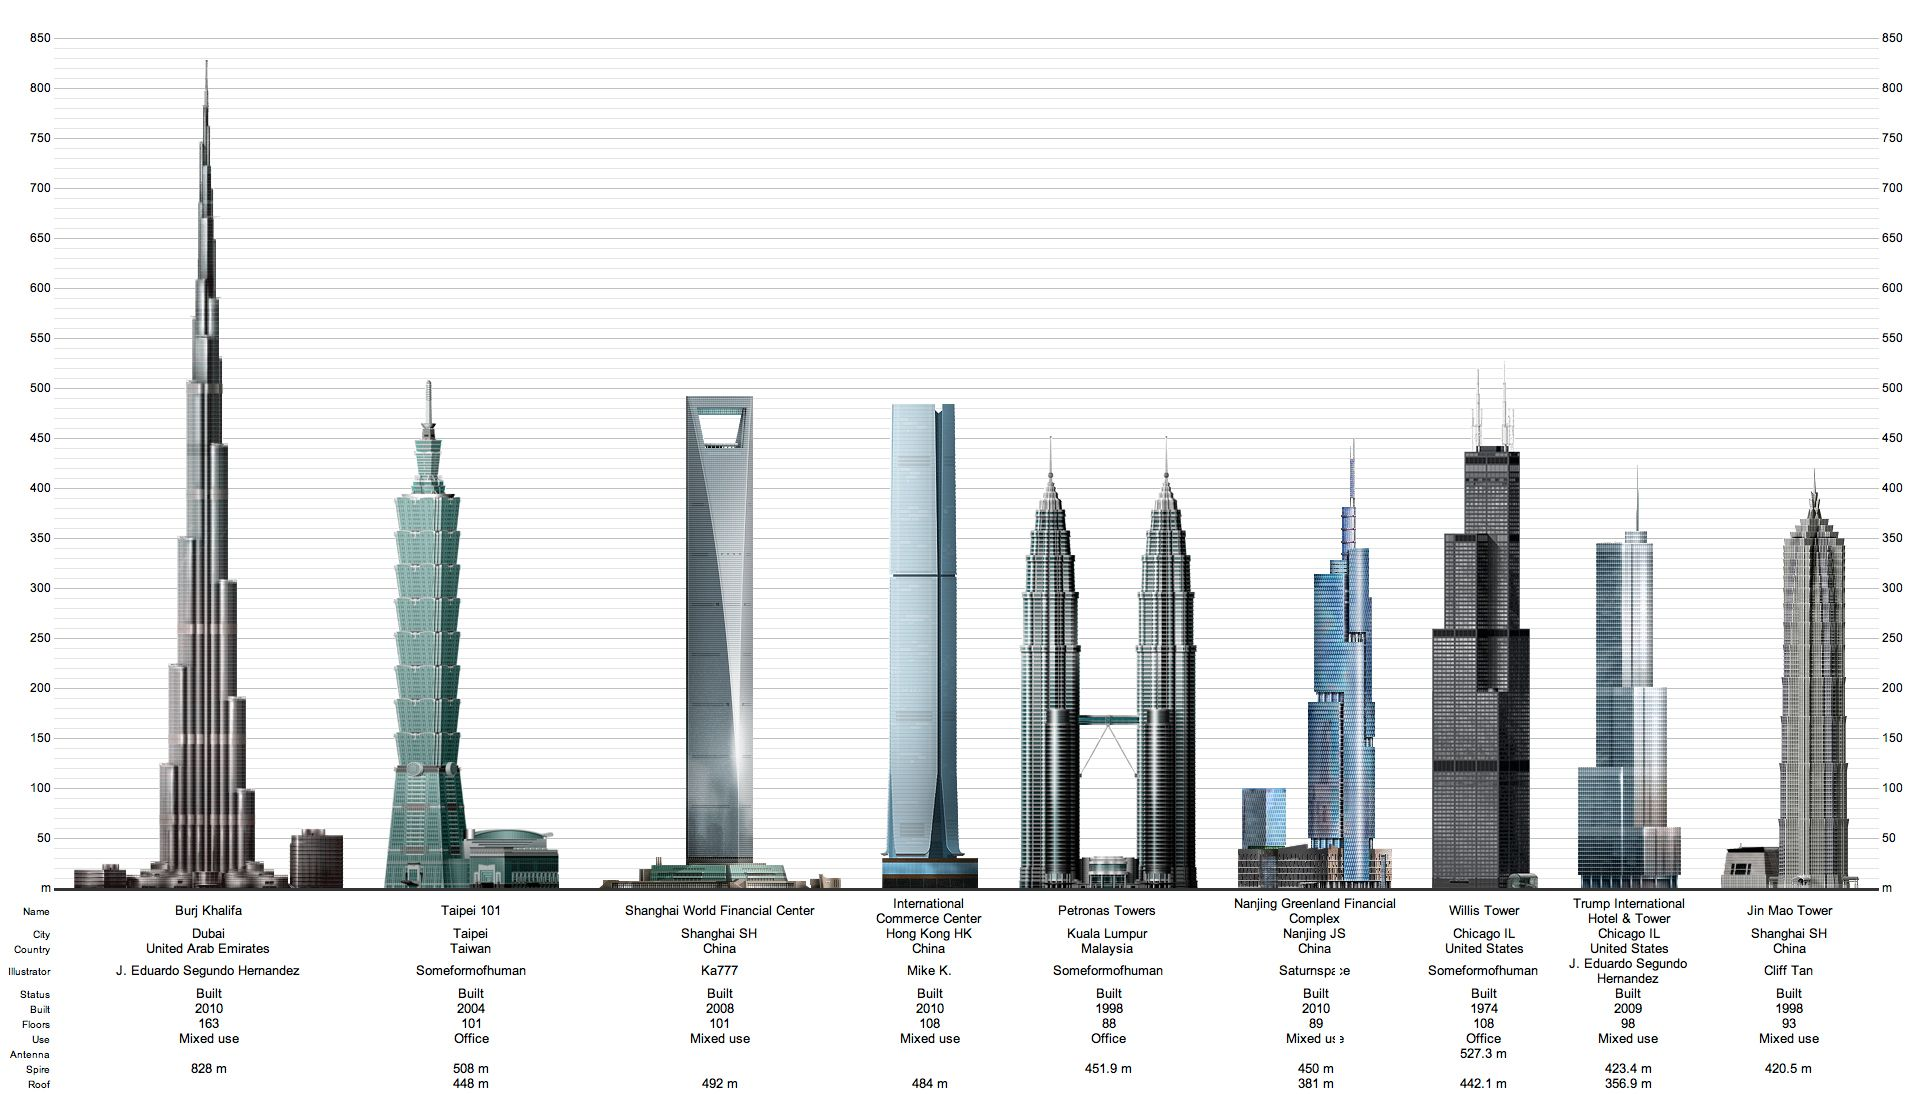 skyscrapers of the world Google Search